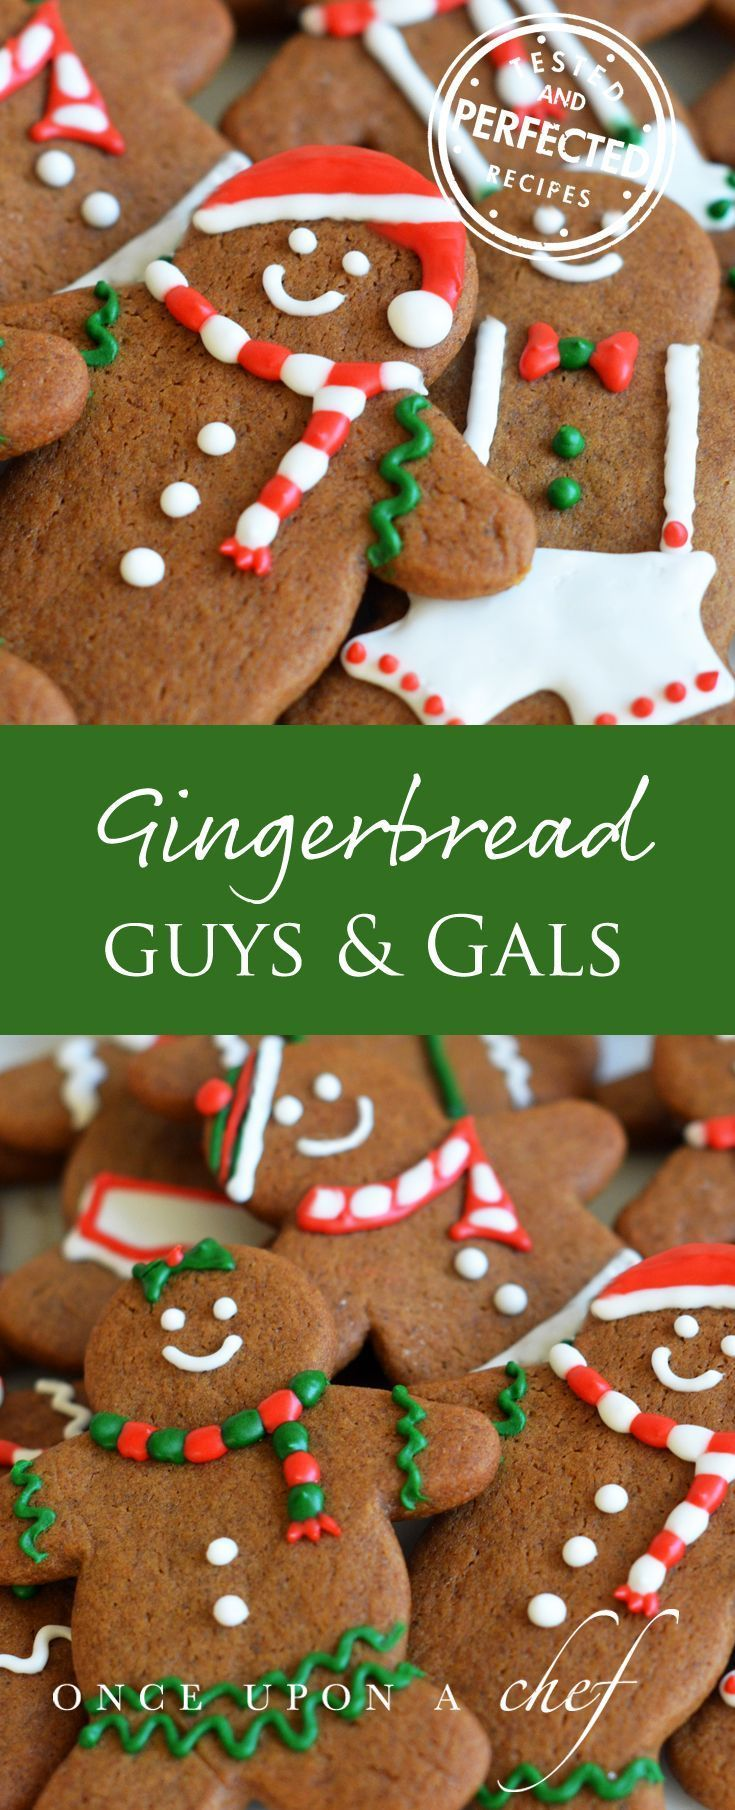 Gingerbread Men - Crisp outside and soft inside, they taste as good as they look. #christmasrecipe #christmascookies #gingerbread #christmasbaking #christmasfood #delicious #testedandperfected